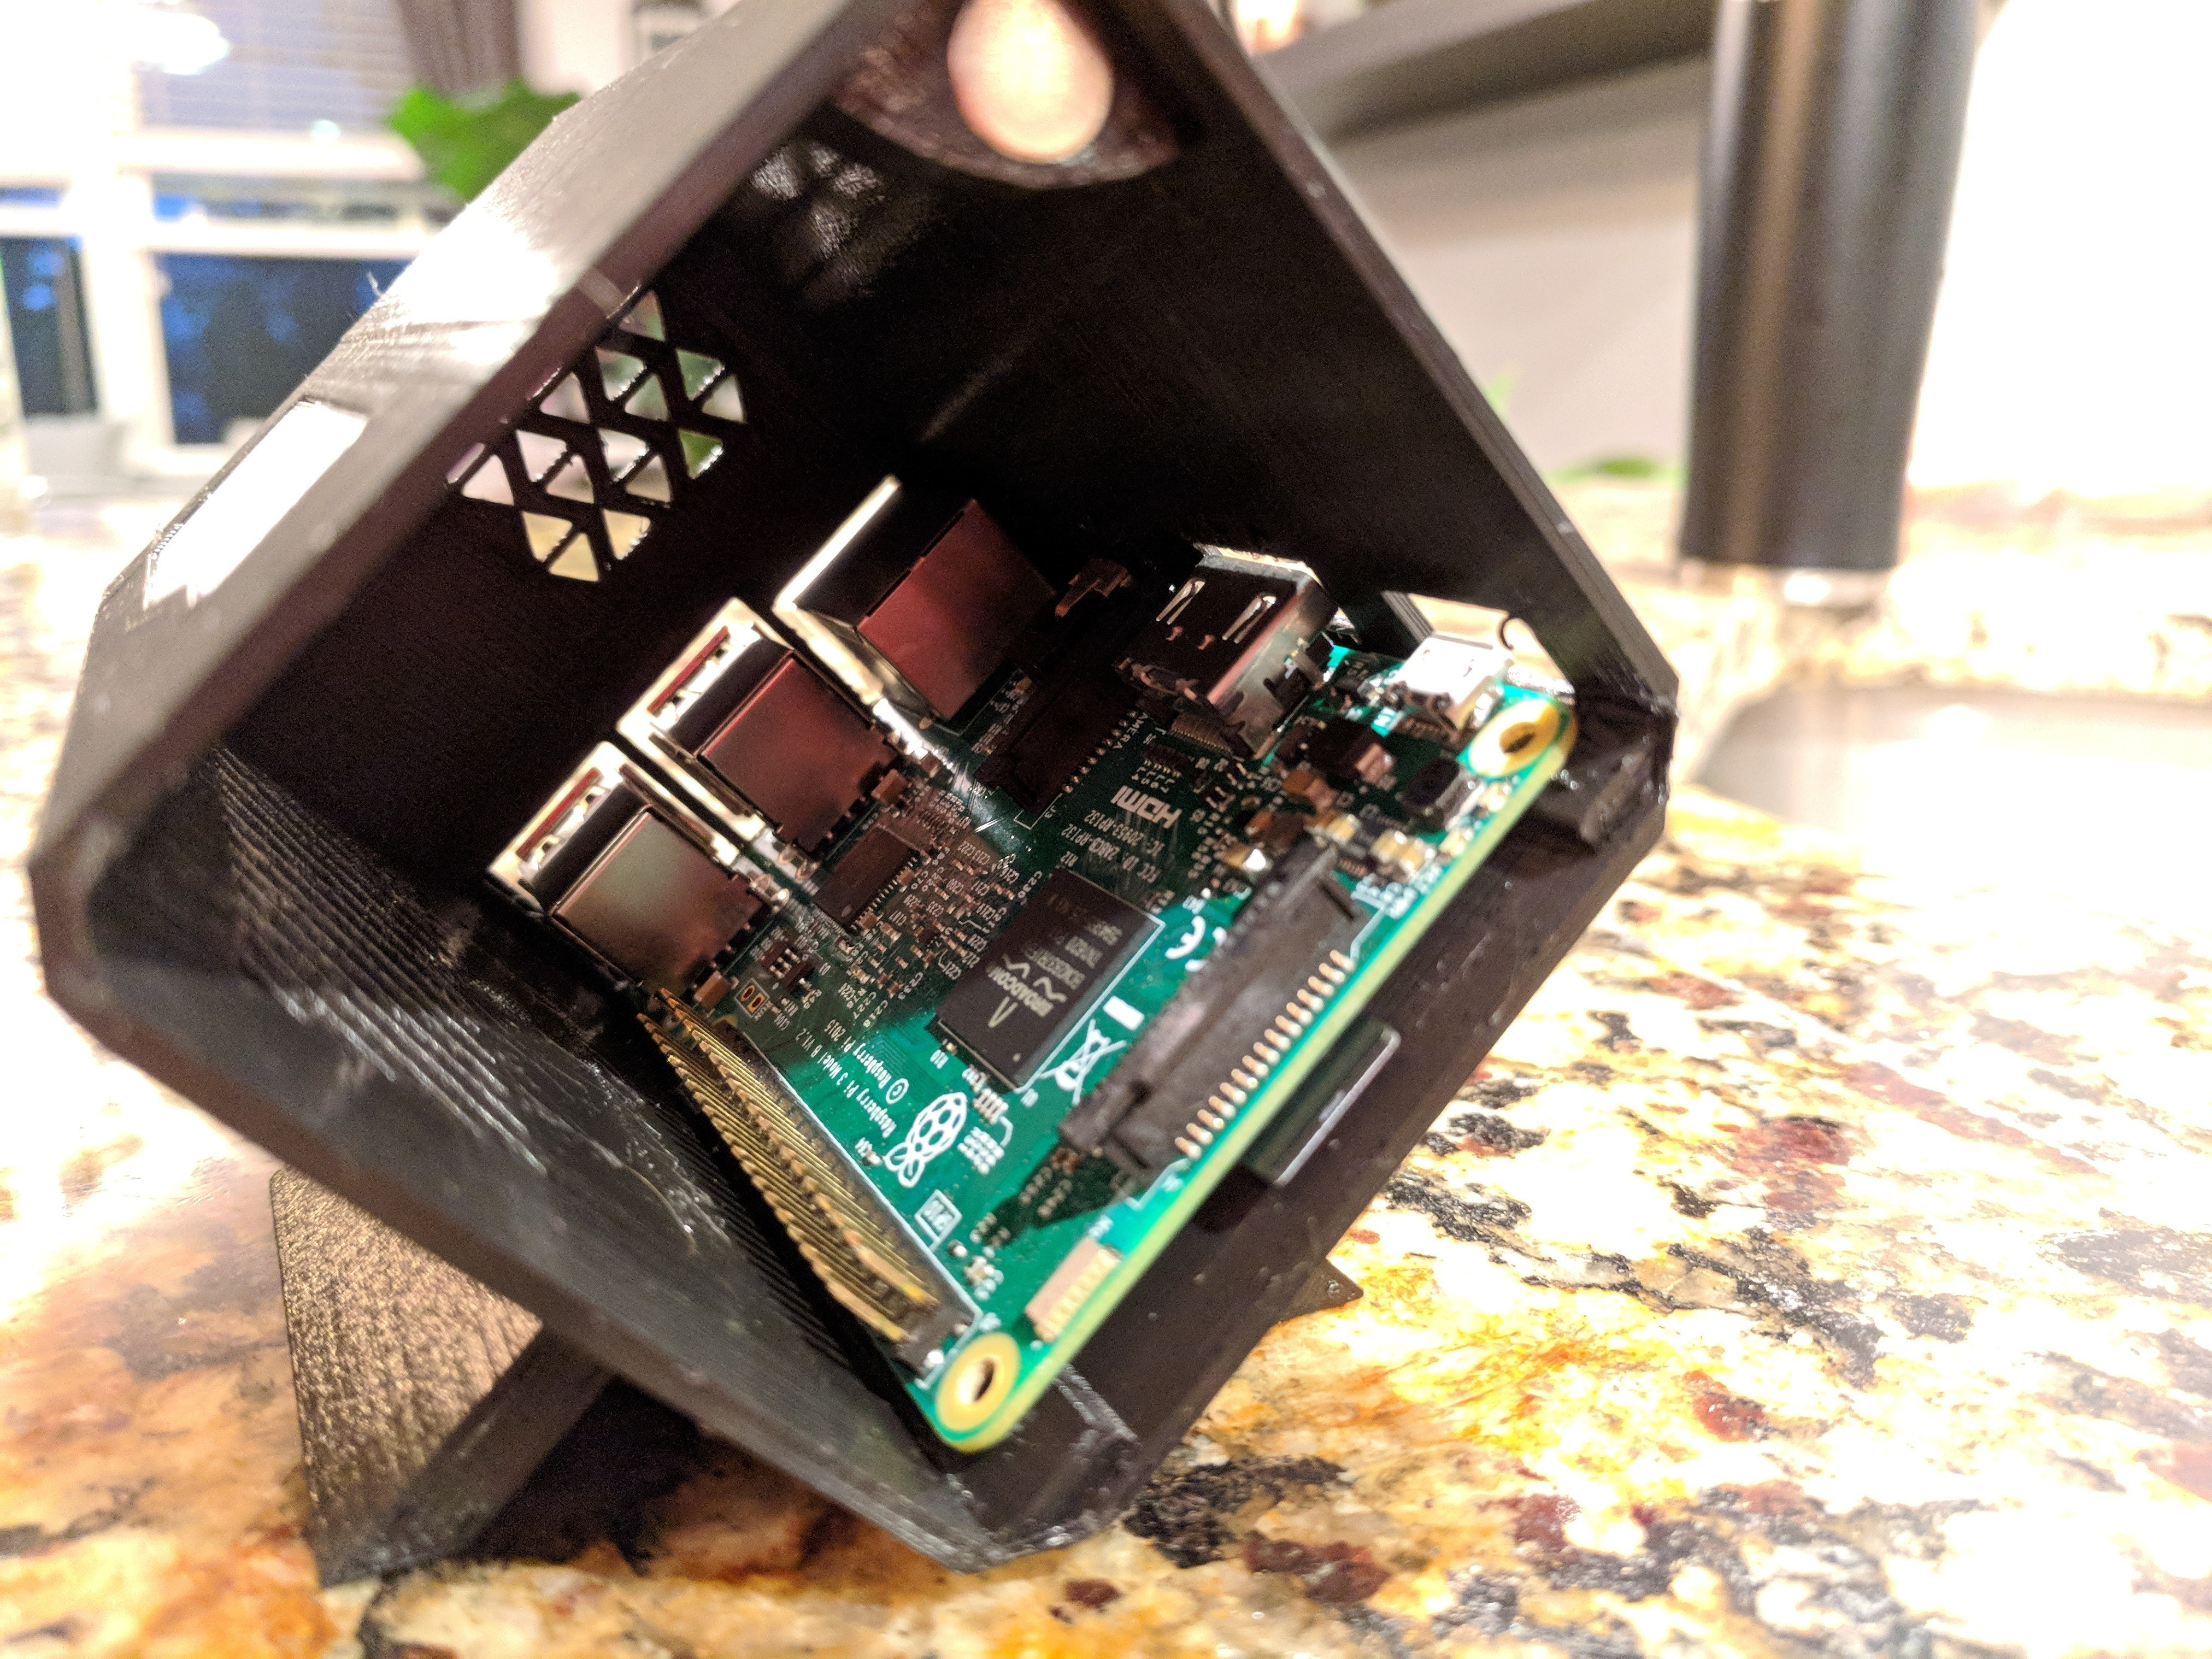 IMG_20180605_211807.jpg Download free STL file Raspberry Pi 3 OMEN Accelerator Case • 3D printable object, Chaco